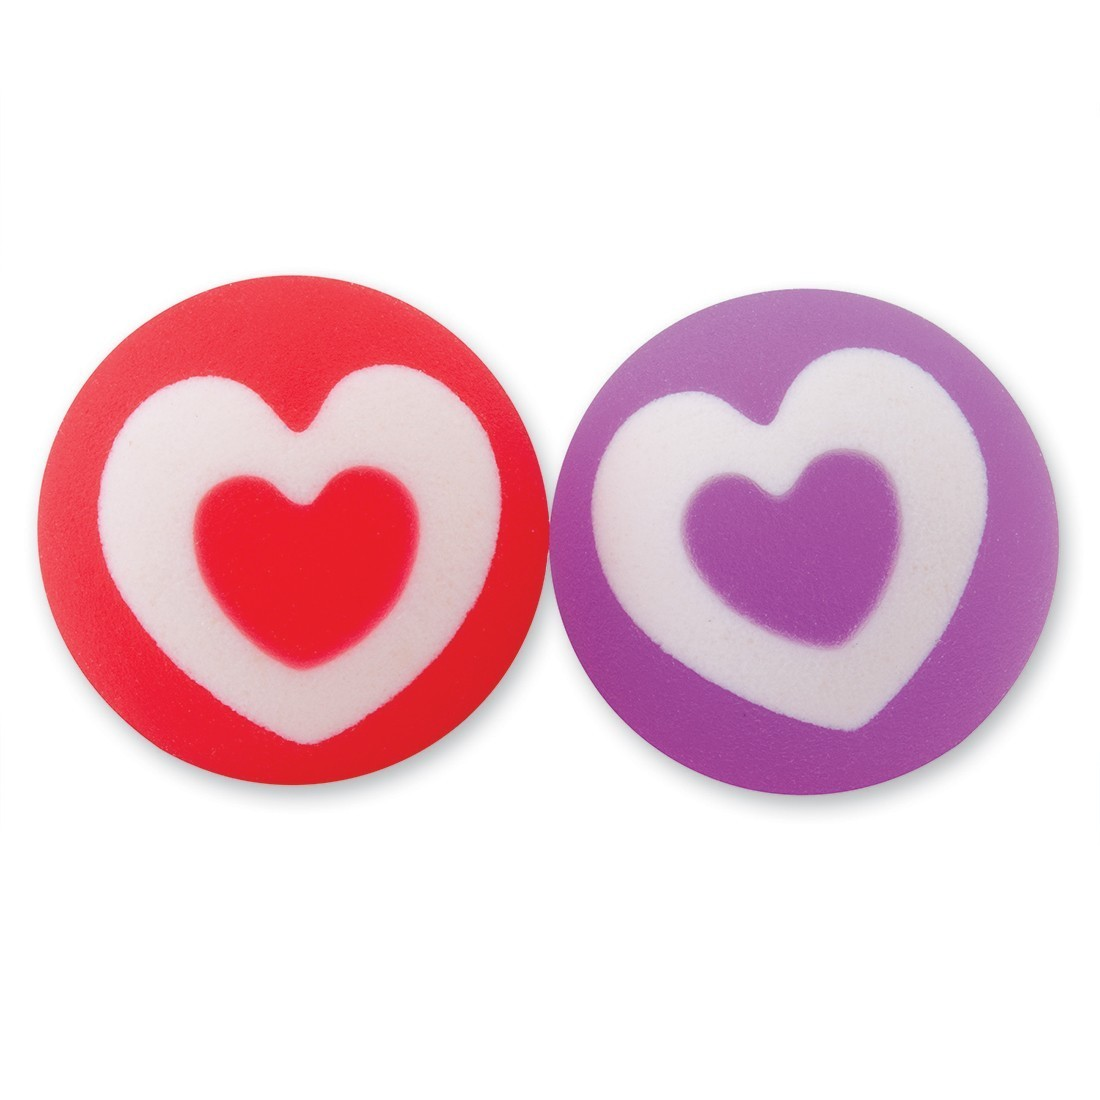 30mm Valentine's Day Heart Bouncing Balls [image]